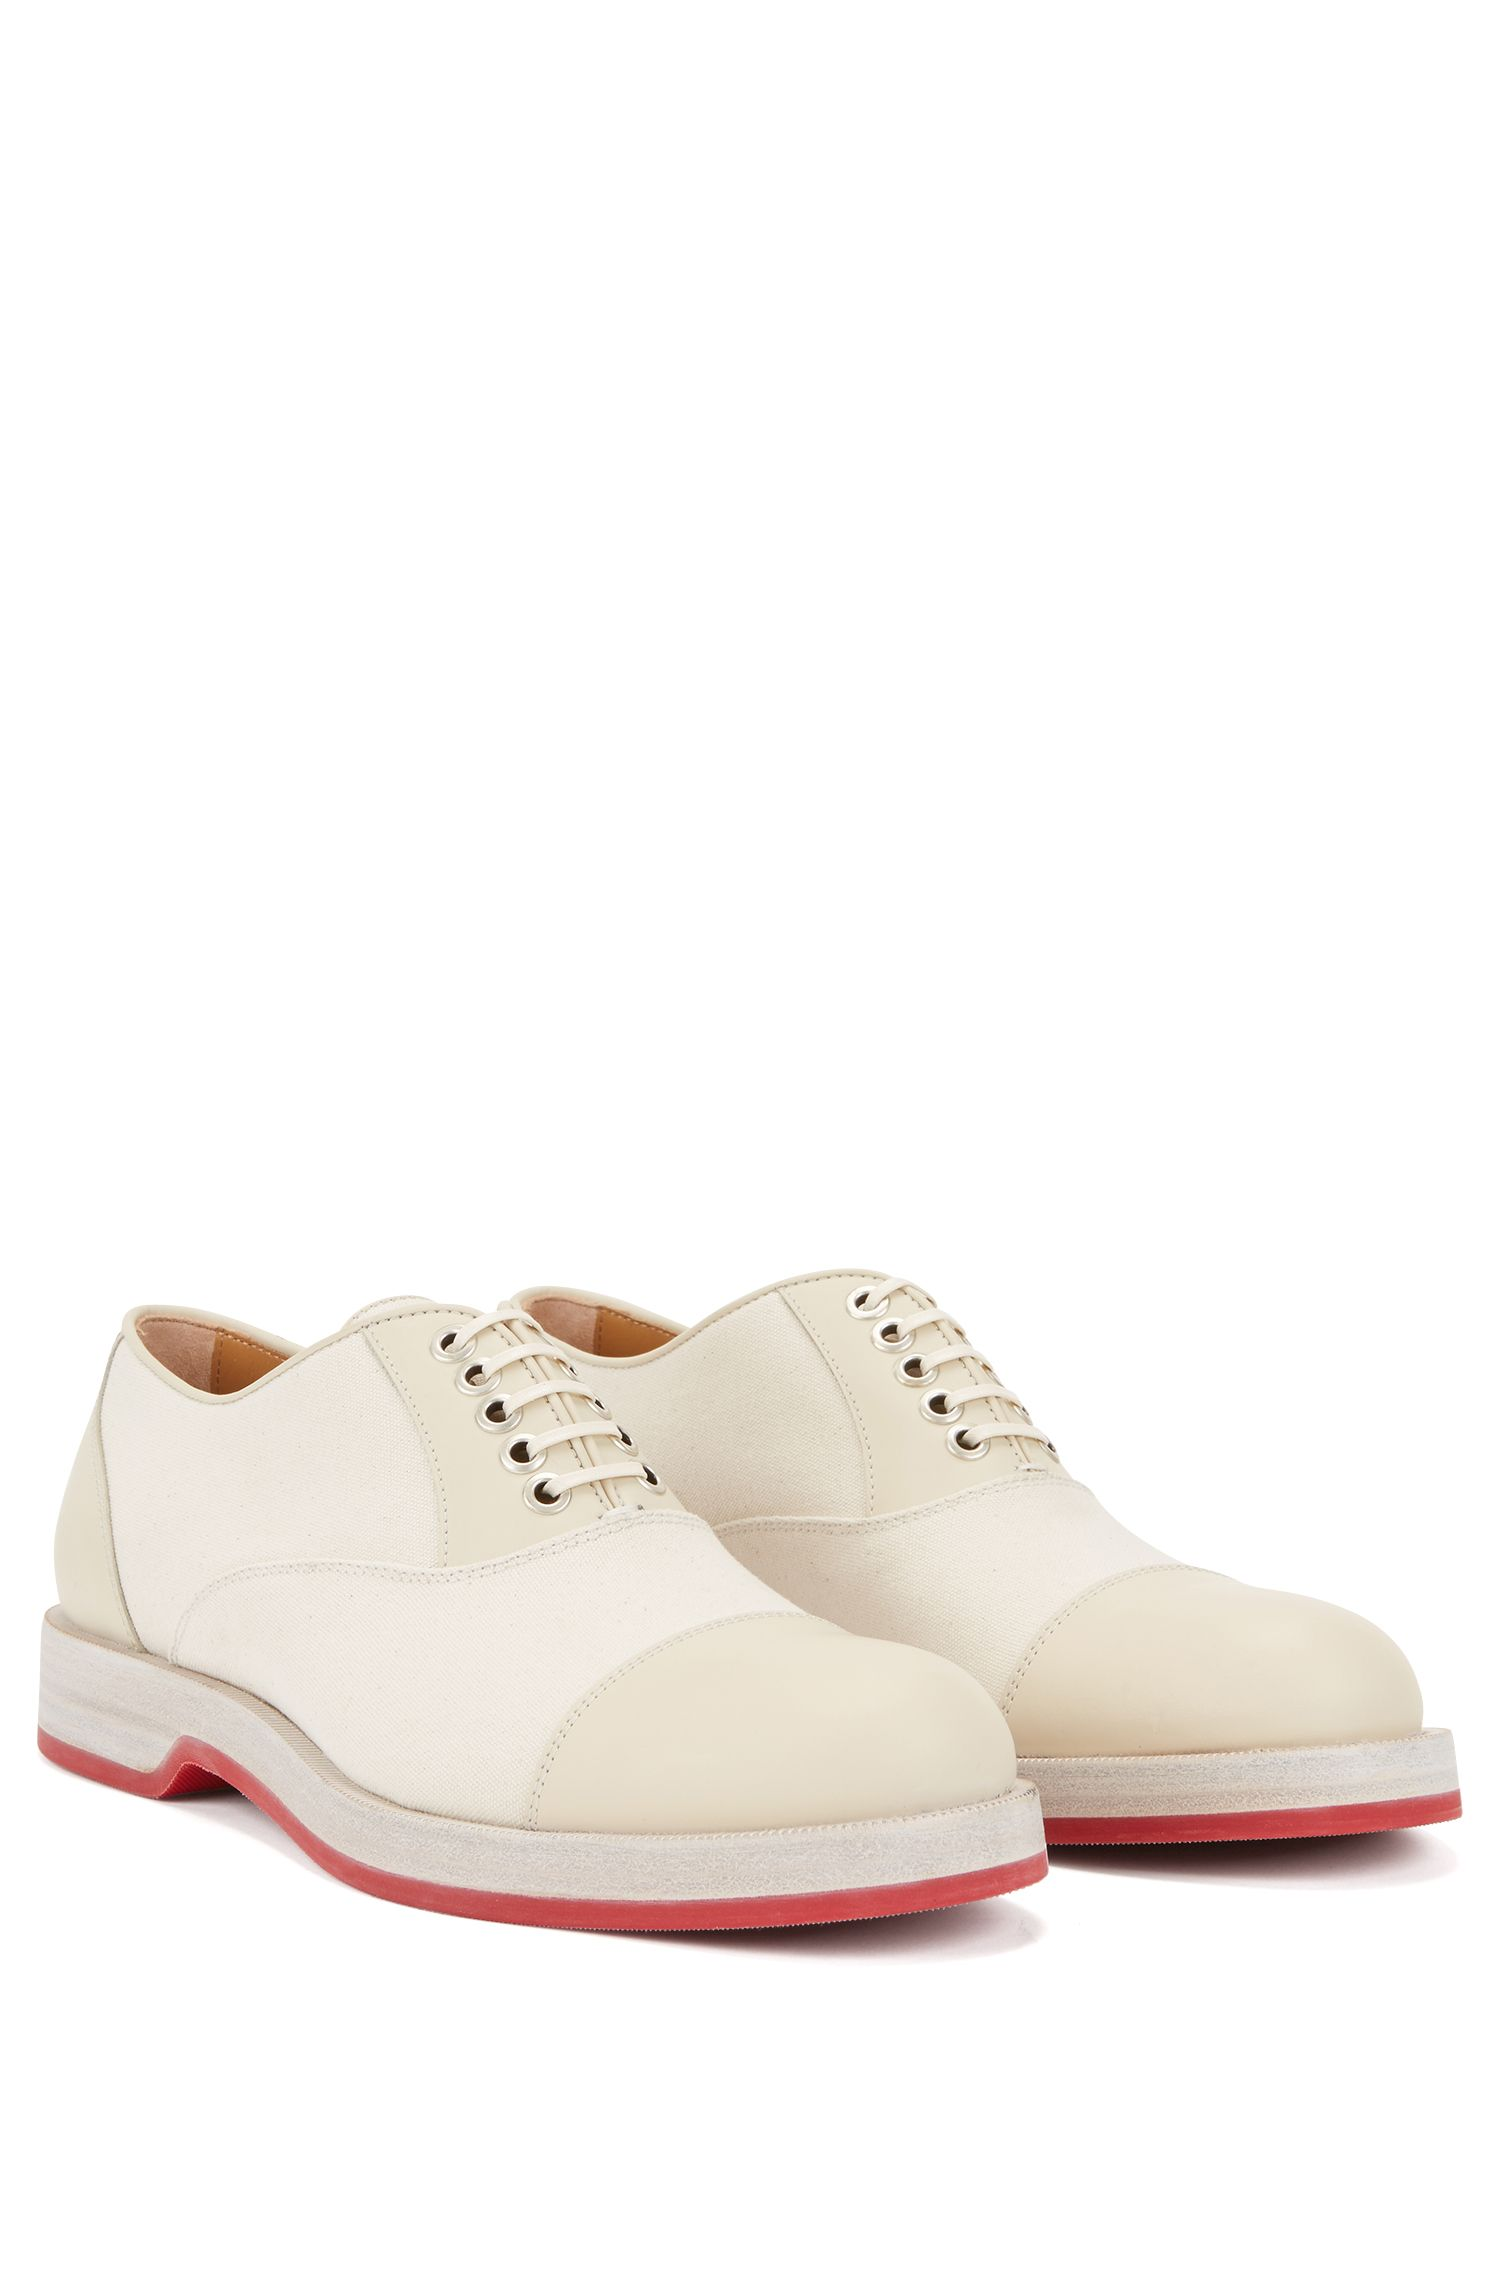 Oxford shoes in smooth leather